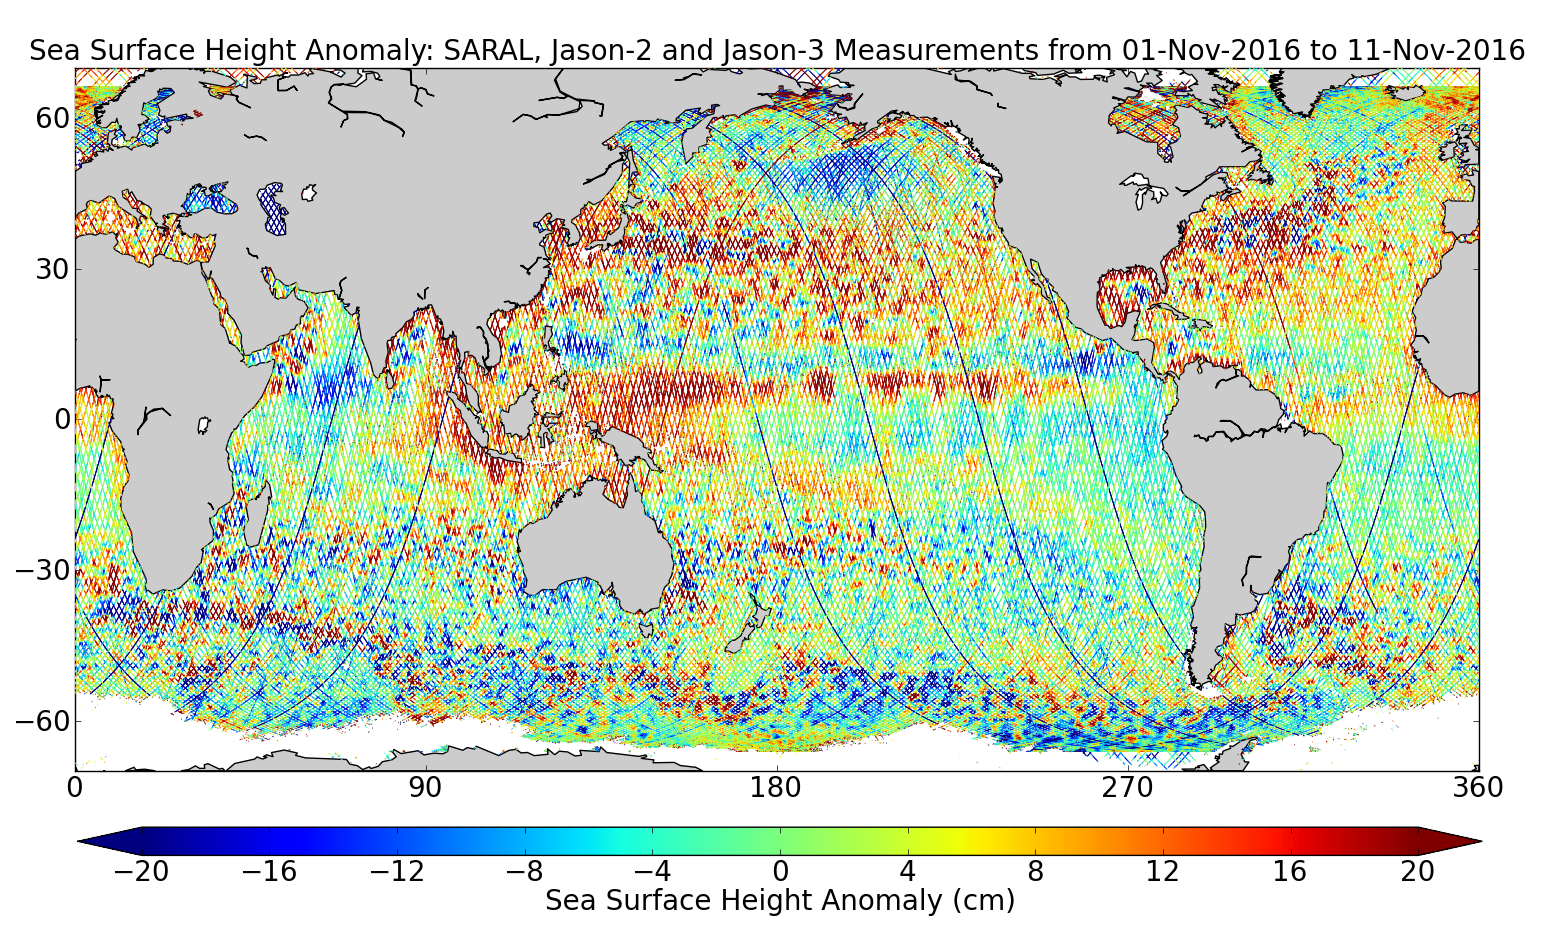 Sea Surface Height Anomaly: SARAL, Jason-2 and Jason-3 Measurements from 01-Nov-2016 to 11-Nov-2016